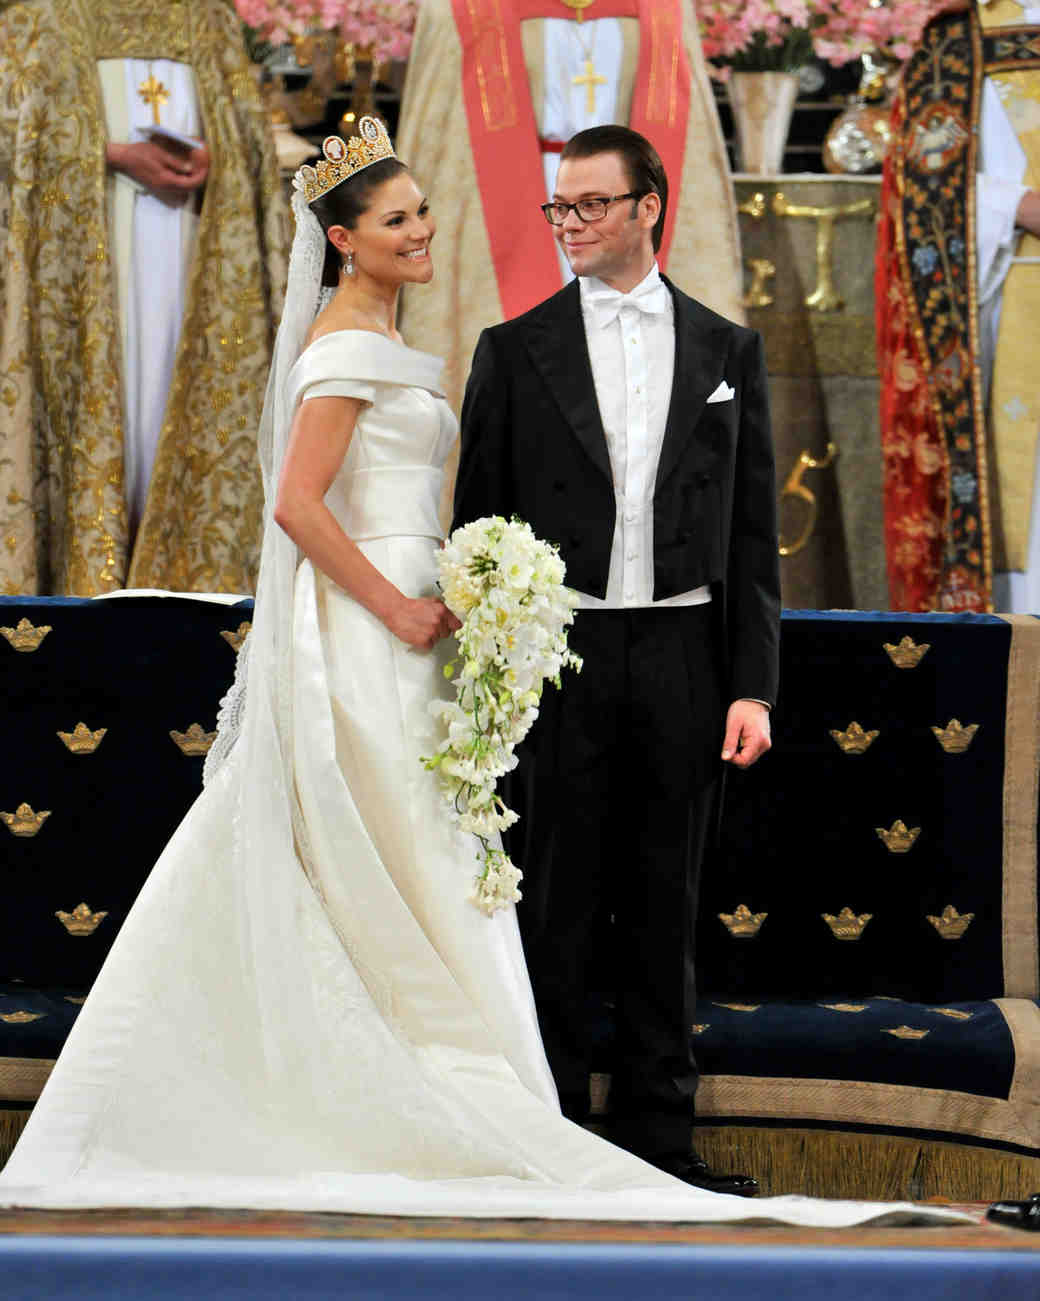 royal-wedding-dress-crown-princess-victoria-sweden-102227759-1115.jpg